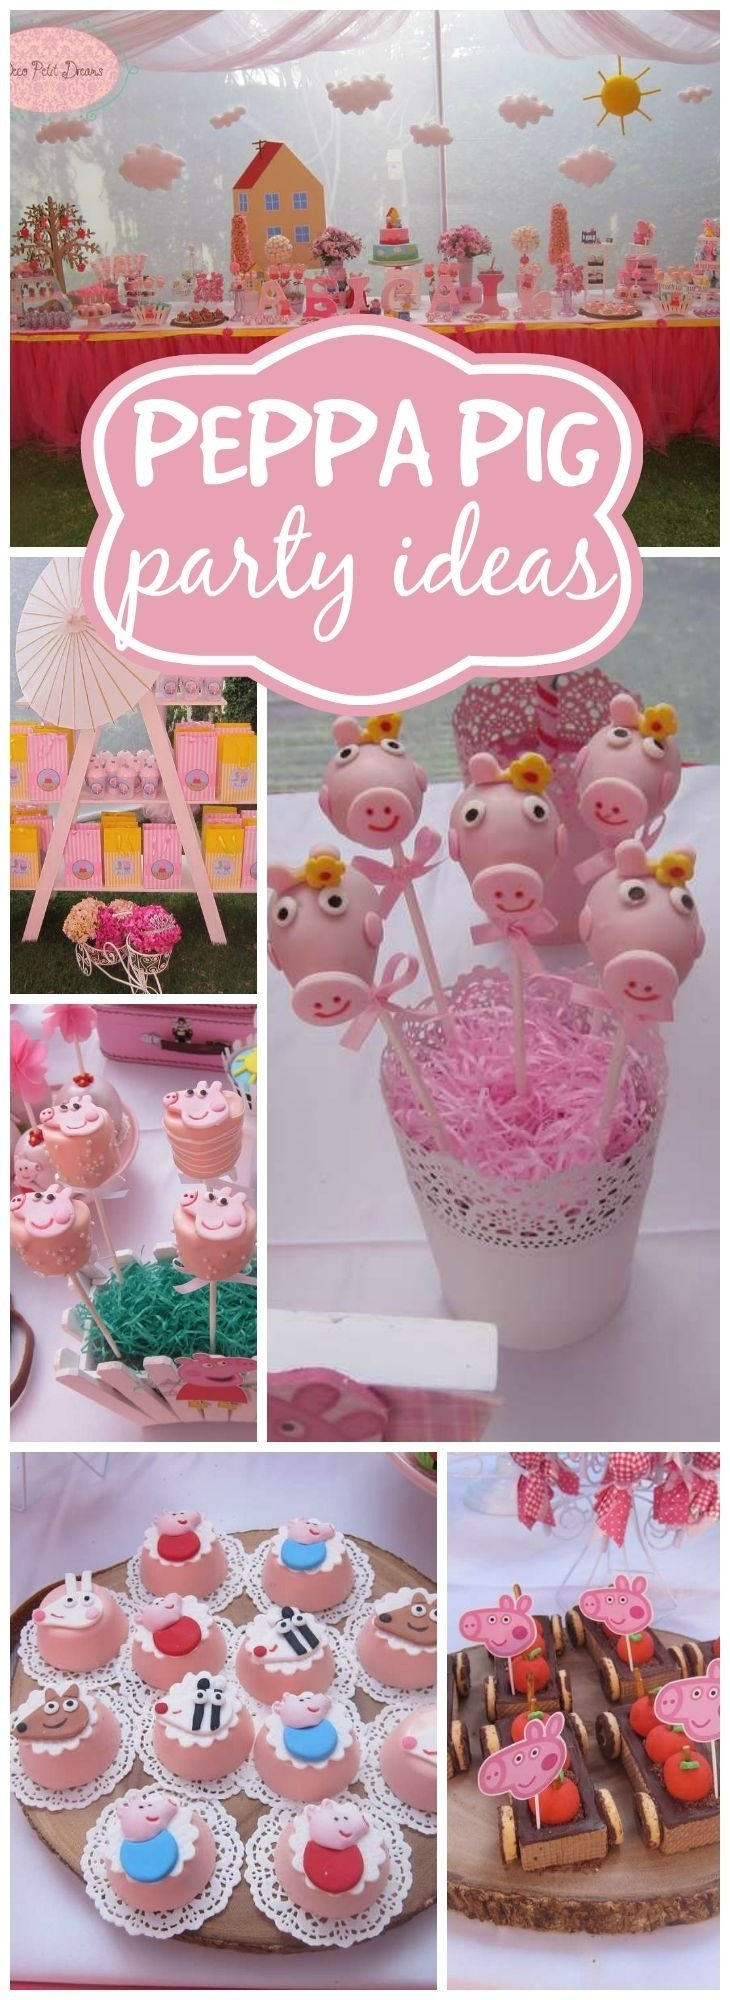 10 Stylish Fun Birthday Ideas For Girls 295 best peppa pig party ideas images on pinterest anniversary